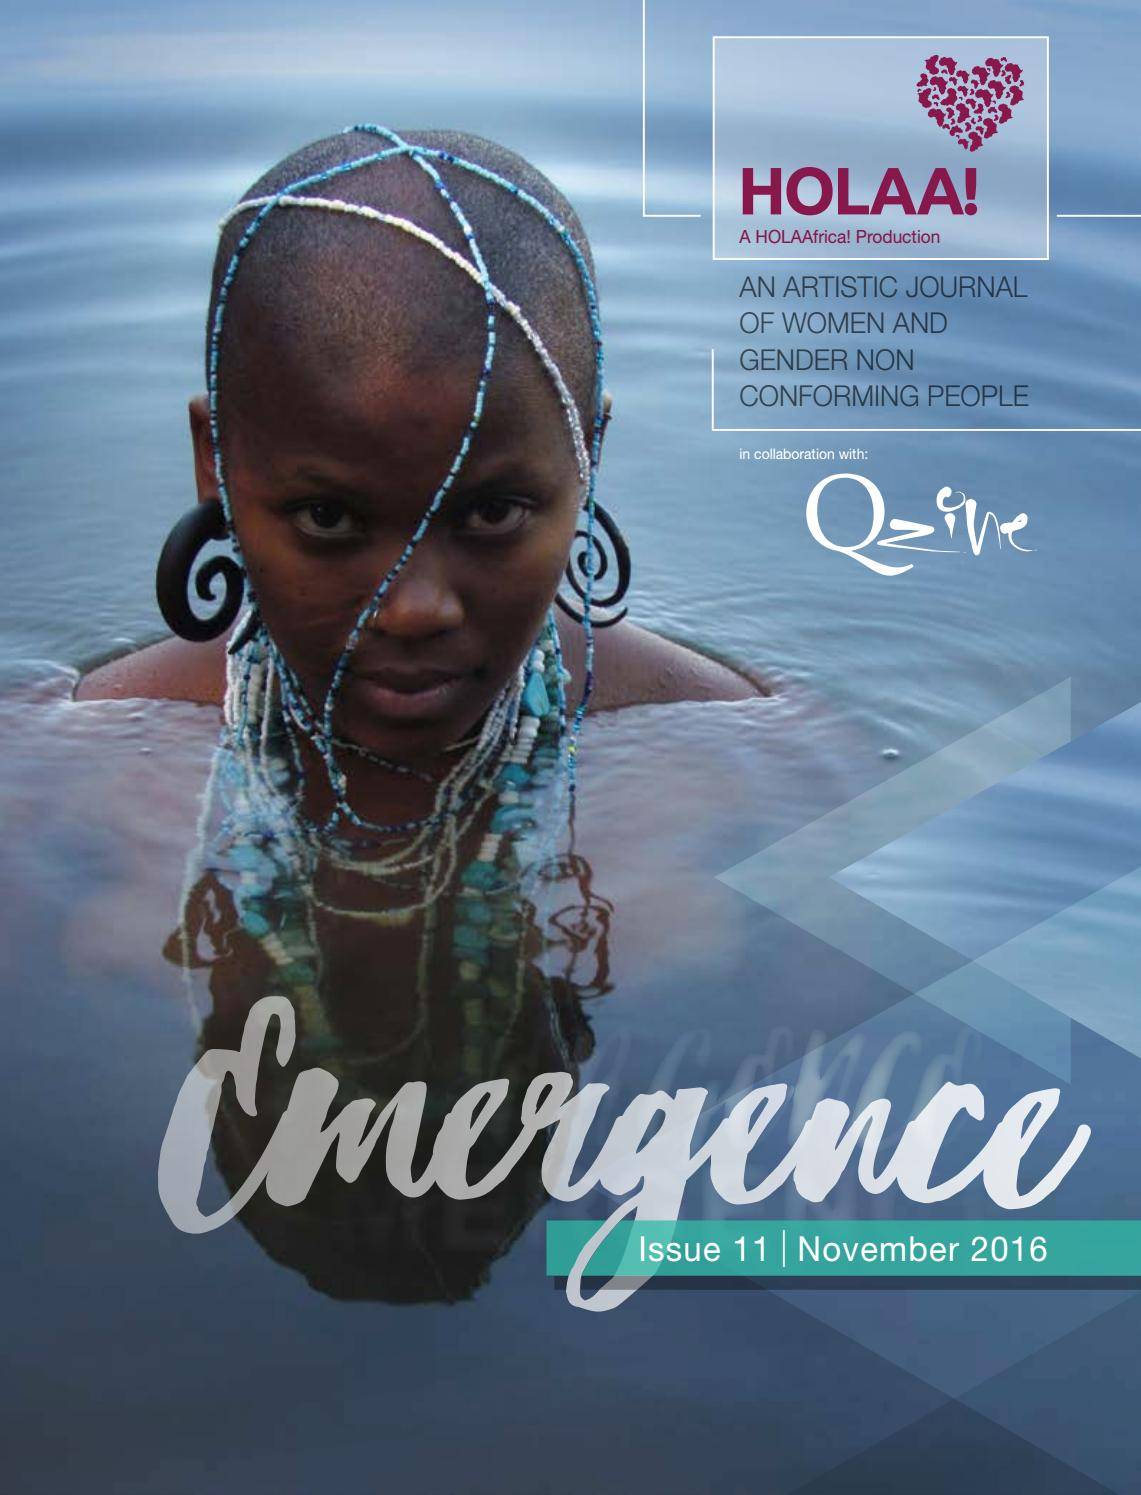 Emergence Artistic Journal in collaboration with Q-Zine by HOLAAfrica -  issuu